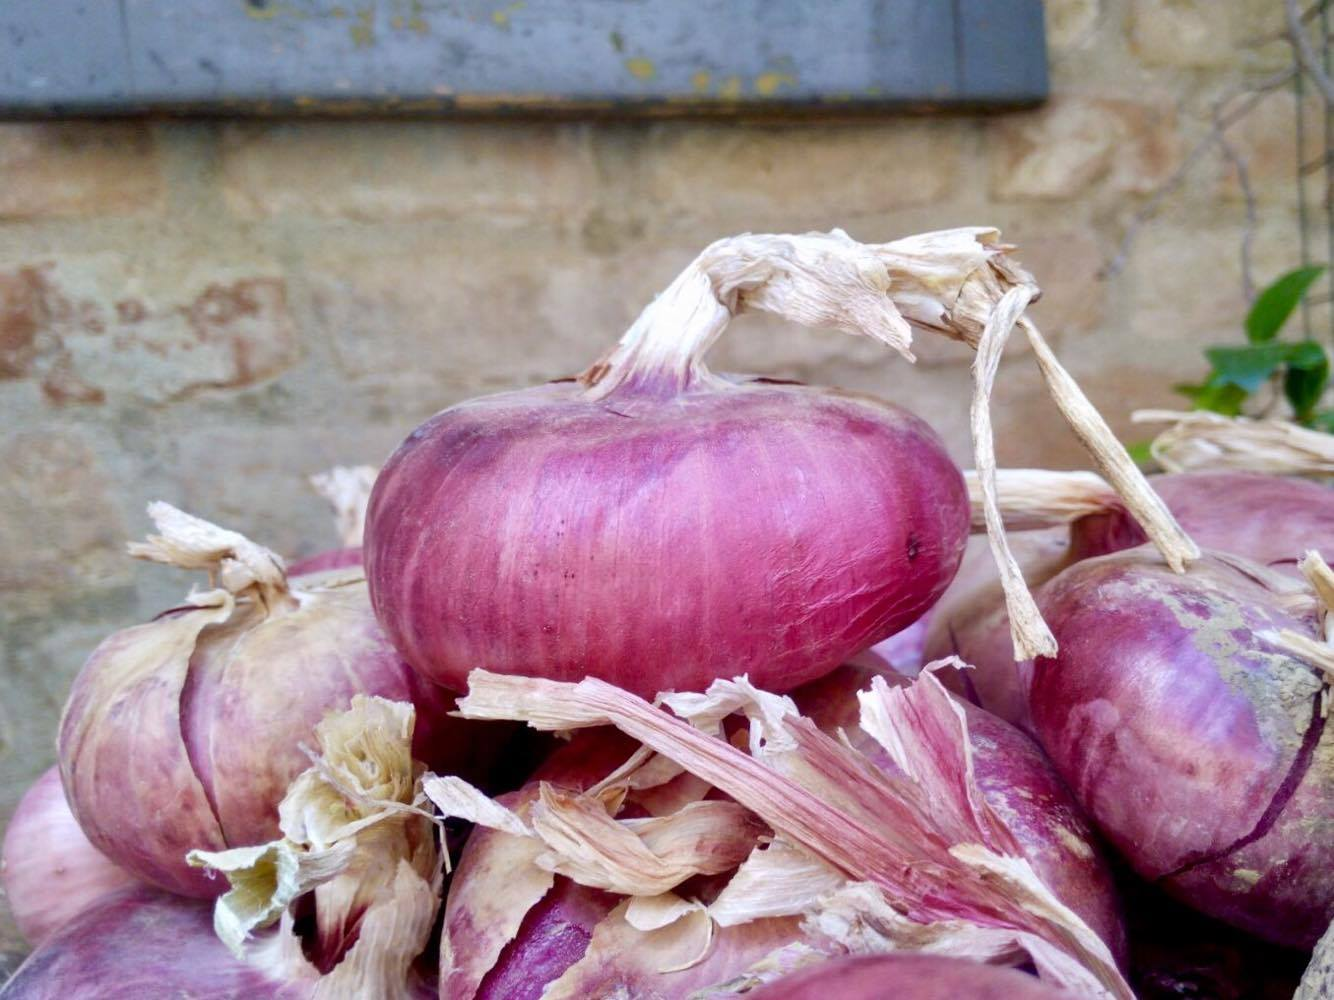 red-onion-certaldo